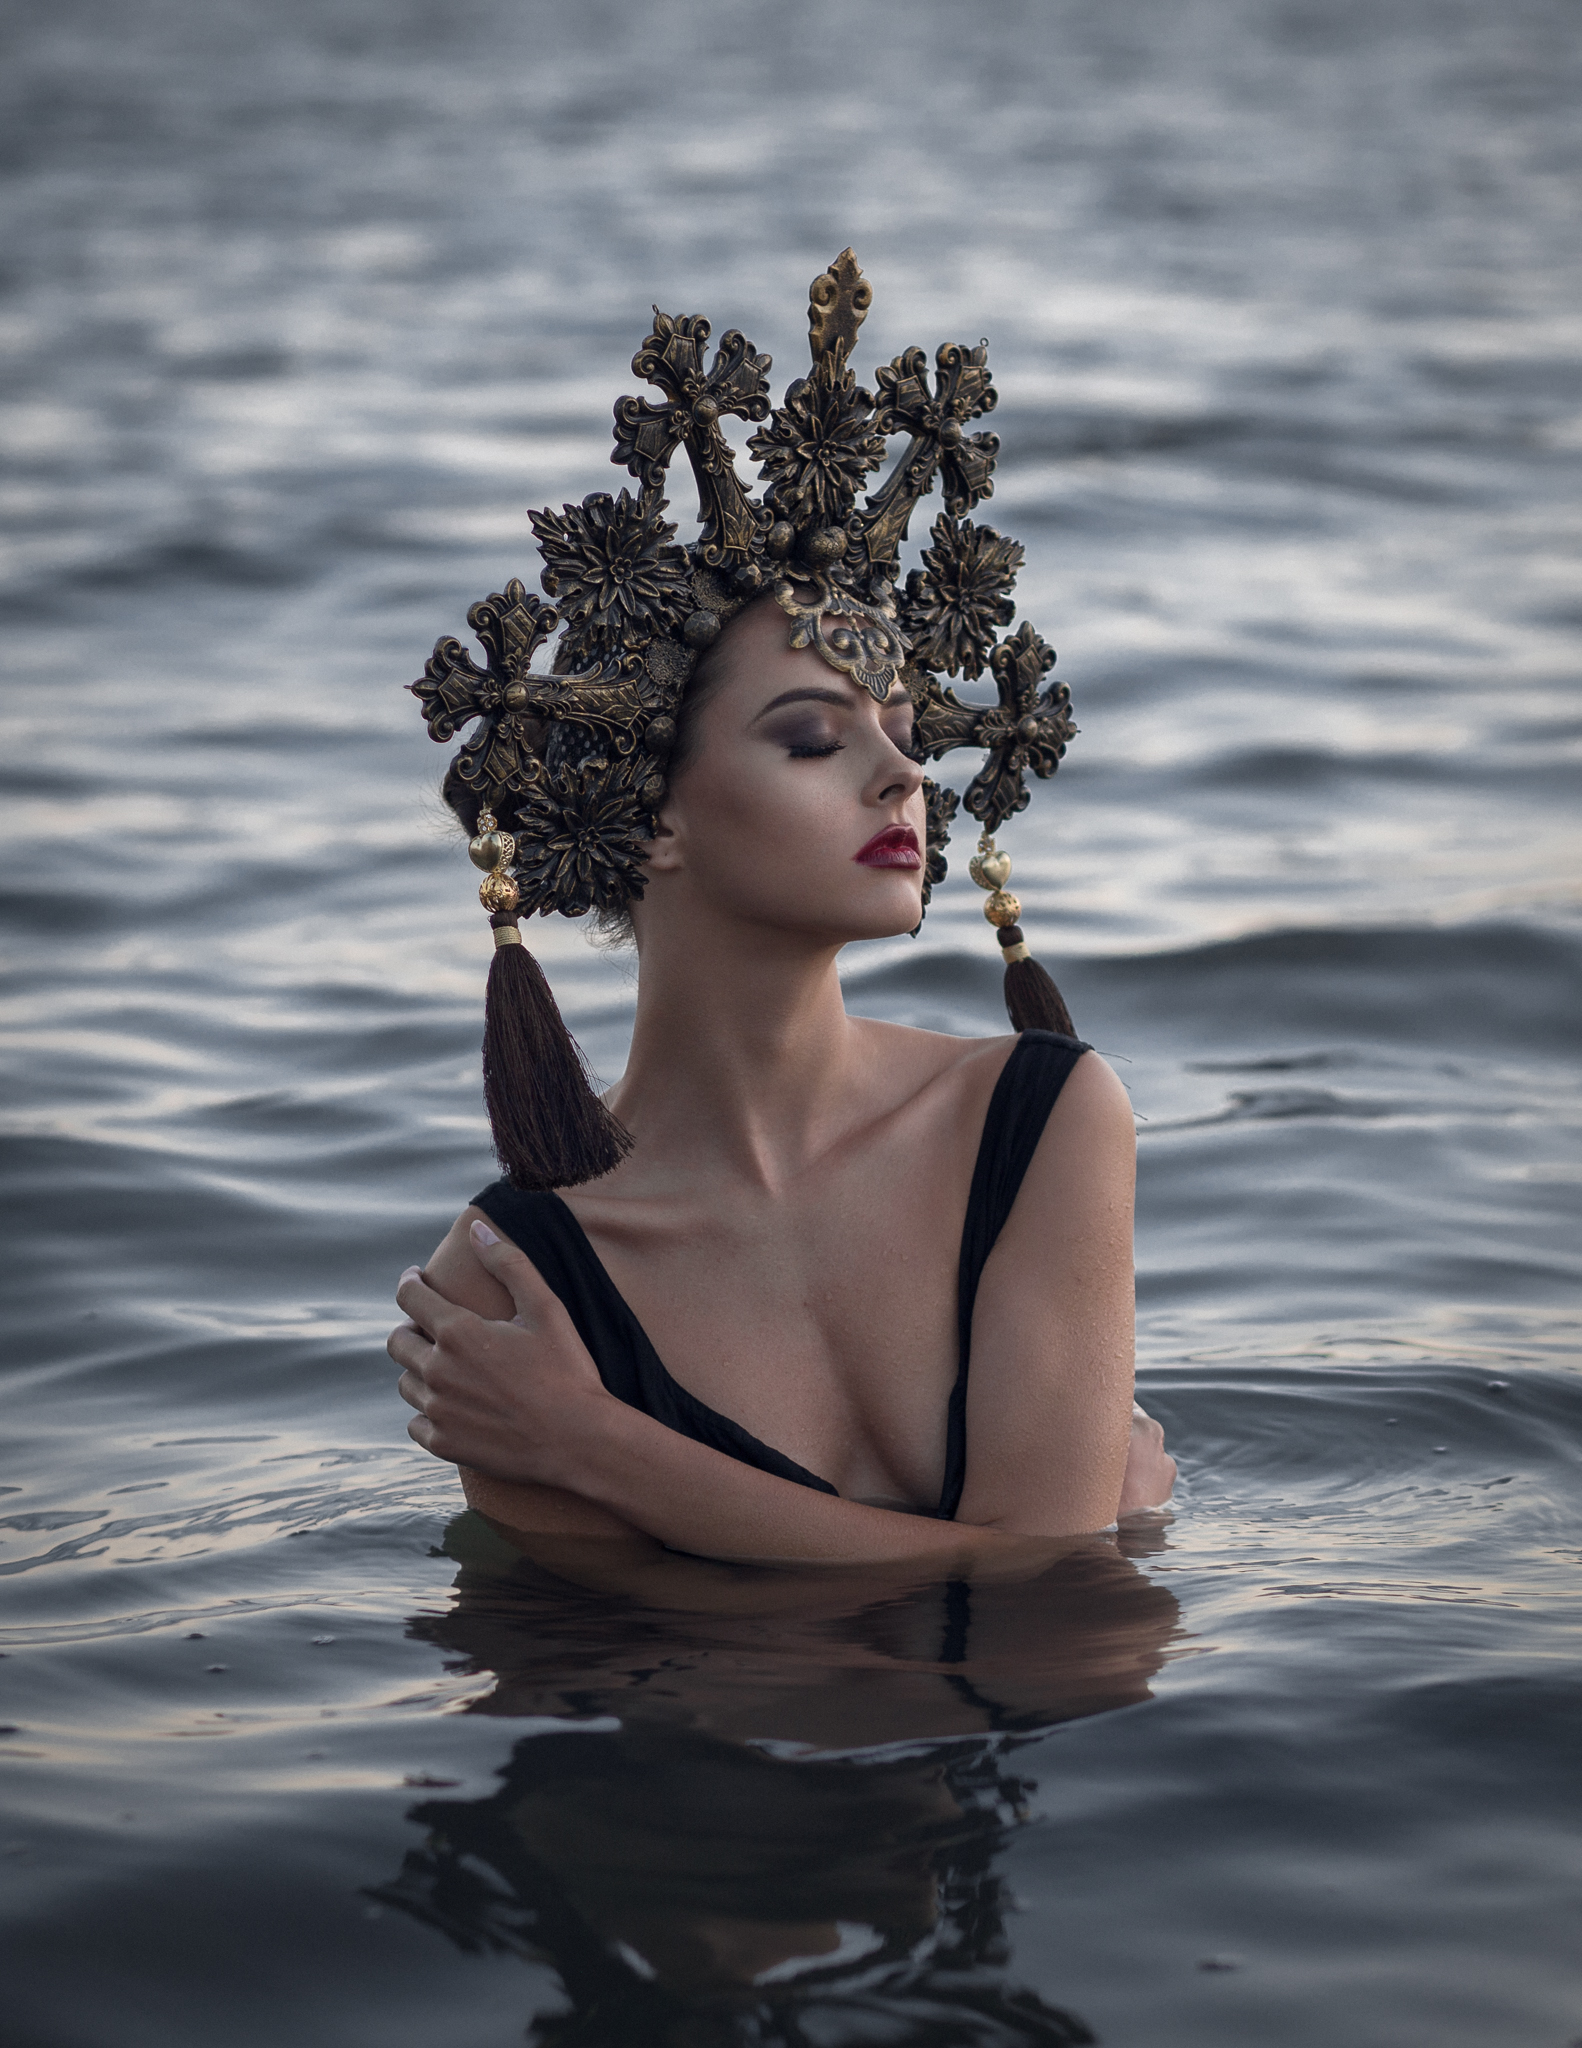 Model:  Cyndal  MUA:  Tristany Lee  Headpiece:  Elysian Fantasy Artistry  Camera: Canon EOS 6D Lens: Canon 85mm 1.8 EXIF: 1/160 f/2.8 ISO250 Natural Light